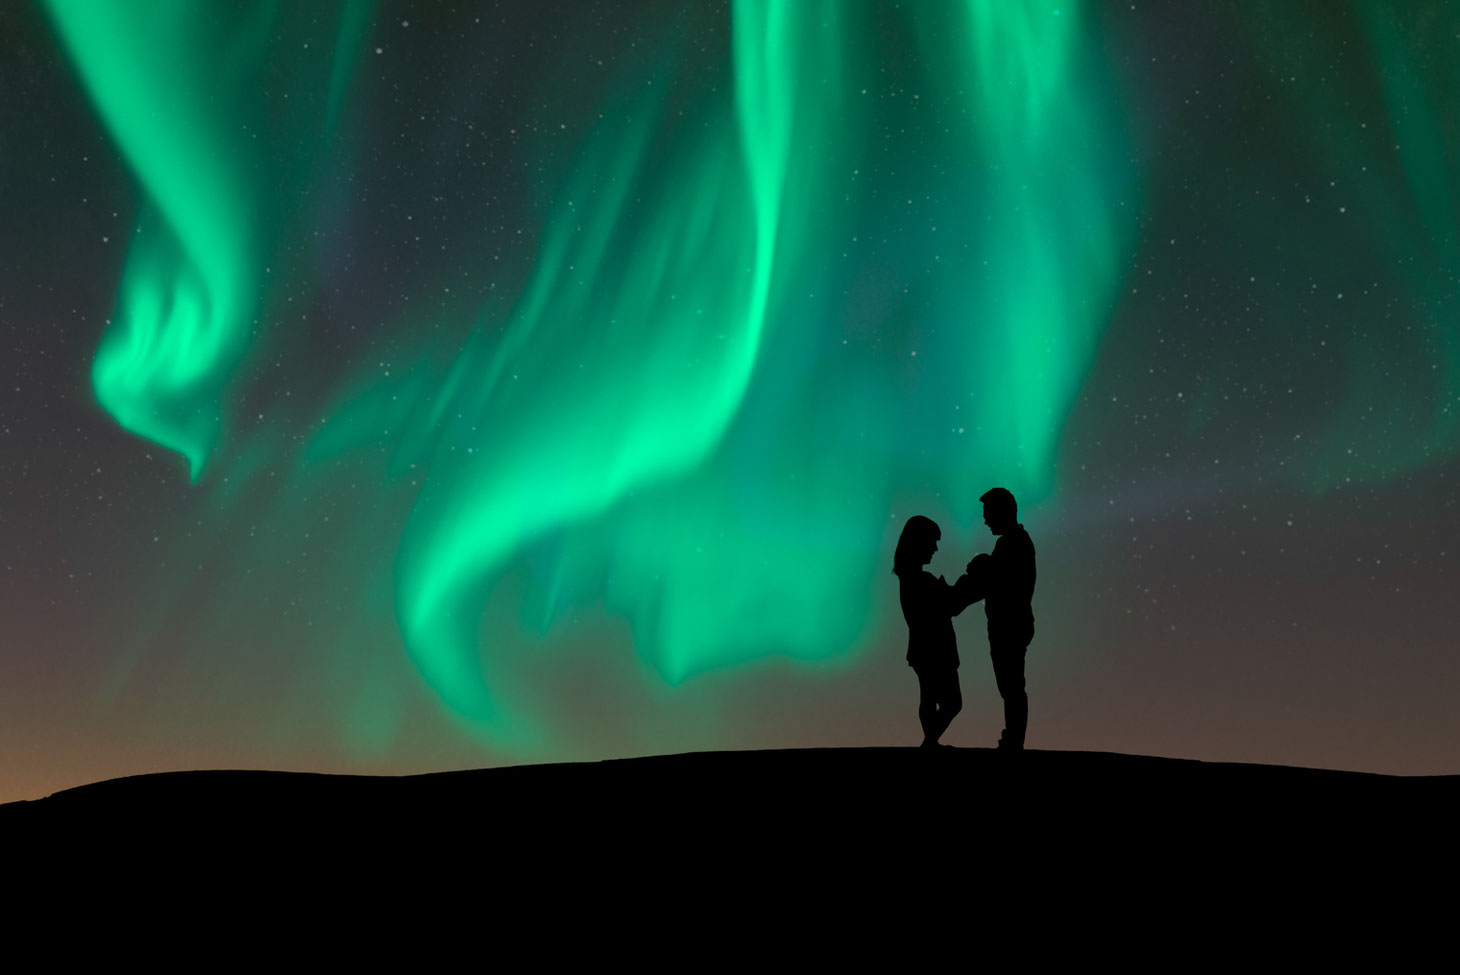 silhouette of mother, new baby, and father on a hill. Sky shows the green Northern Lights and stars. Sky is dark blue with some pink and yellow.